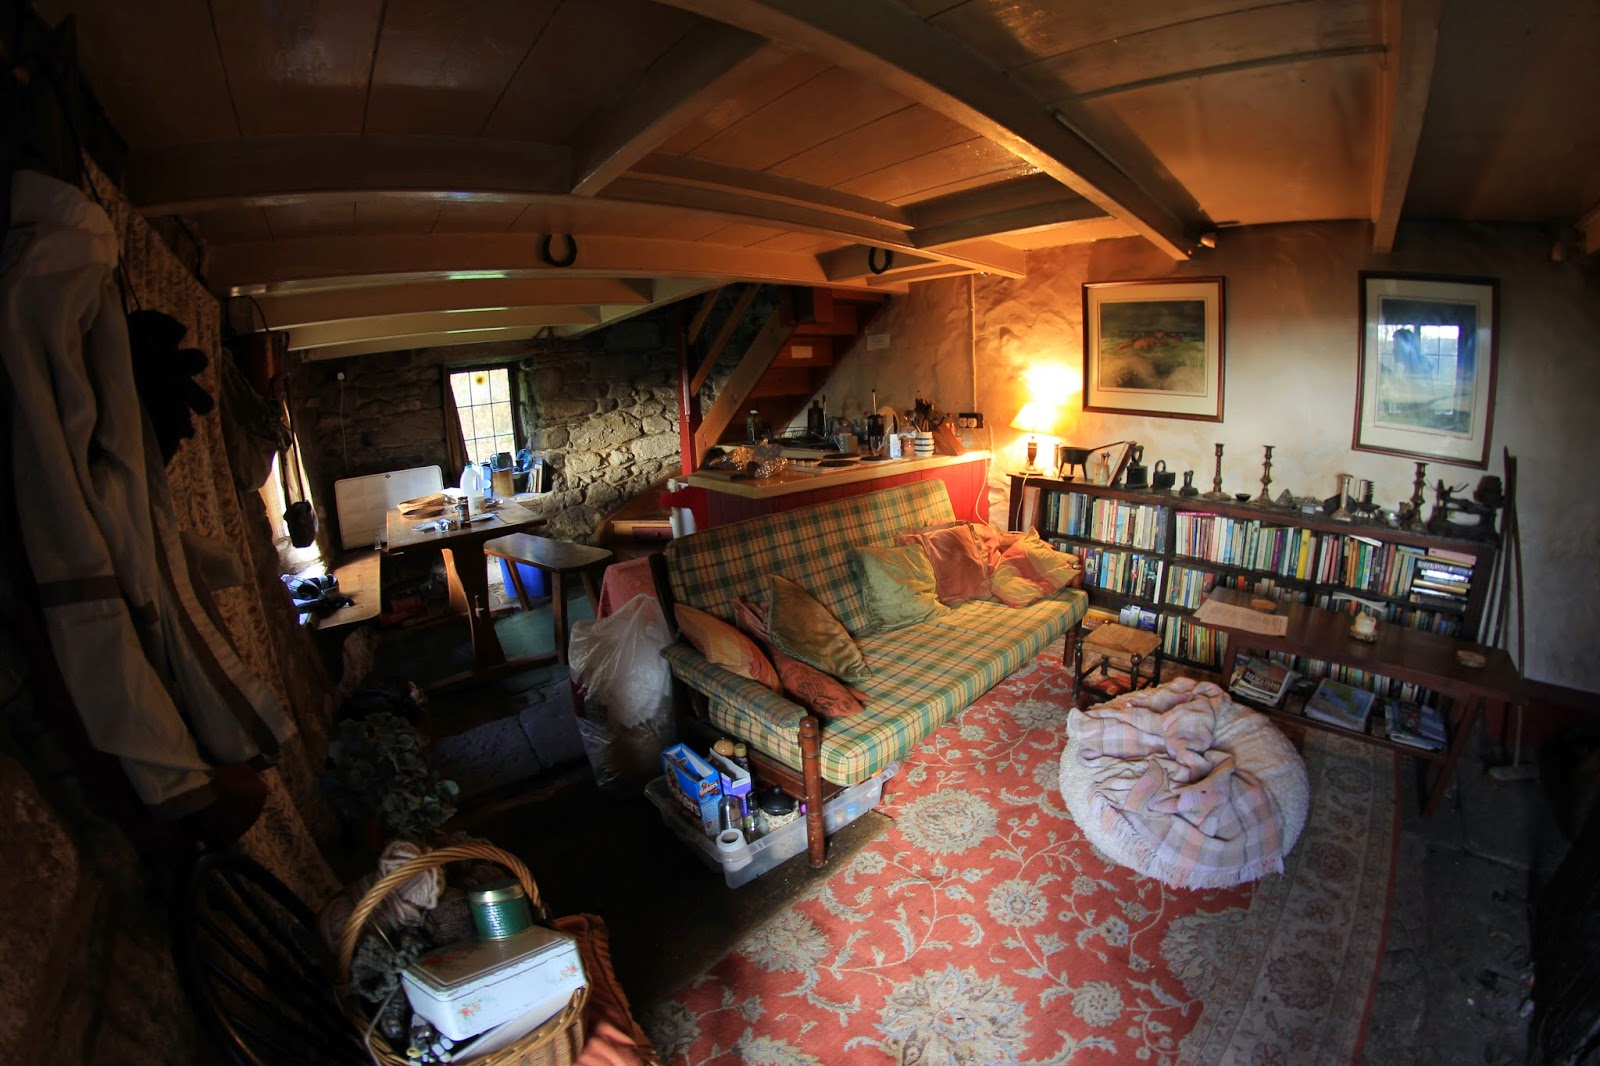 Cosy cottage interior - Mellinzeath Cottage,  Photography by A Handmade Cottage